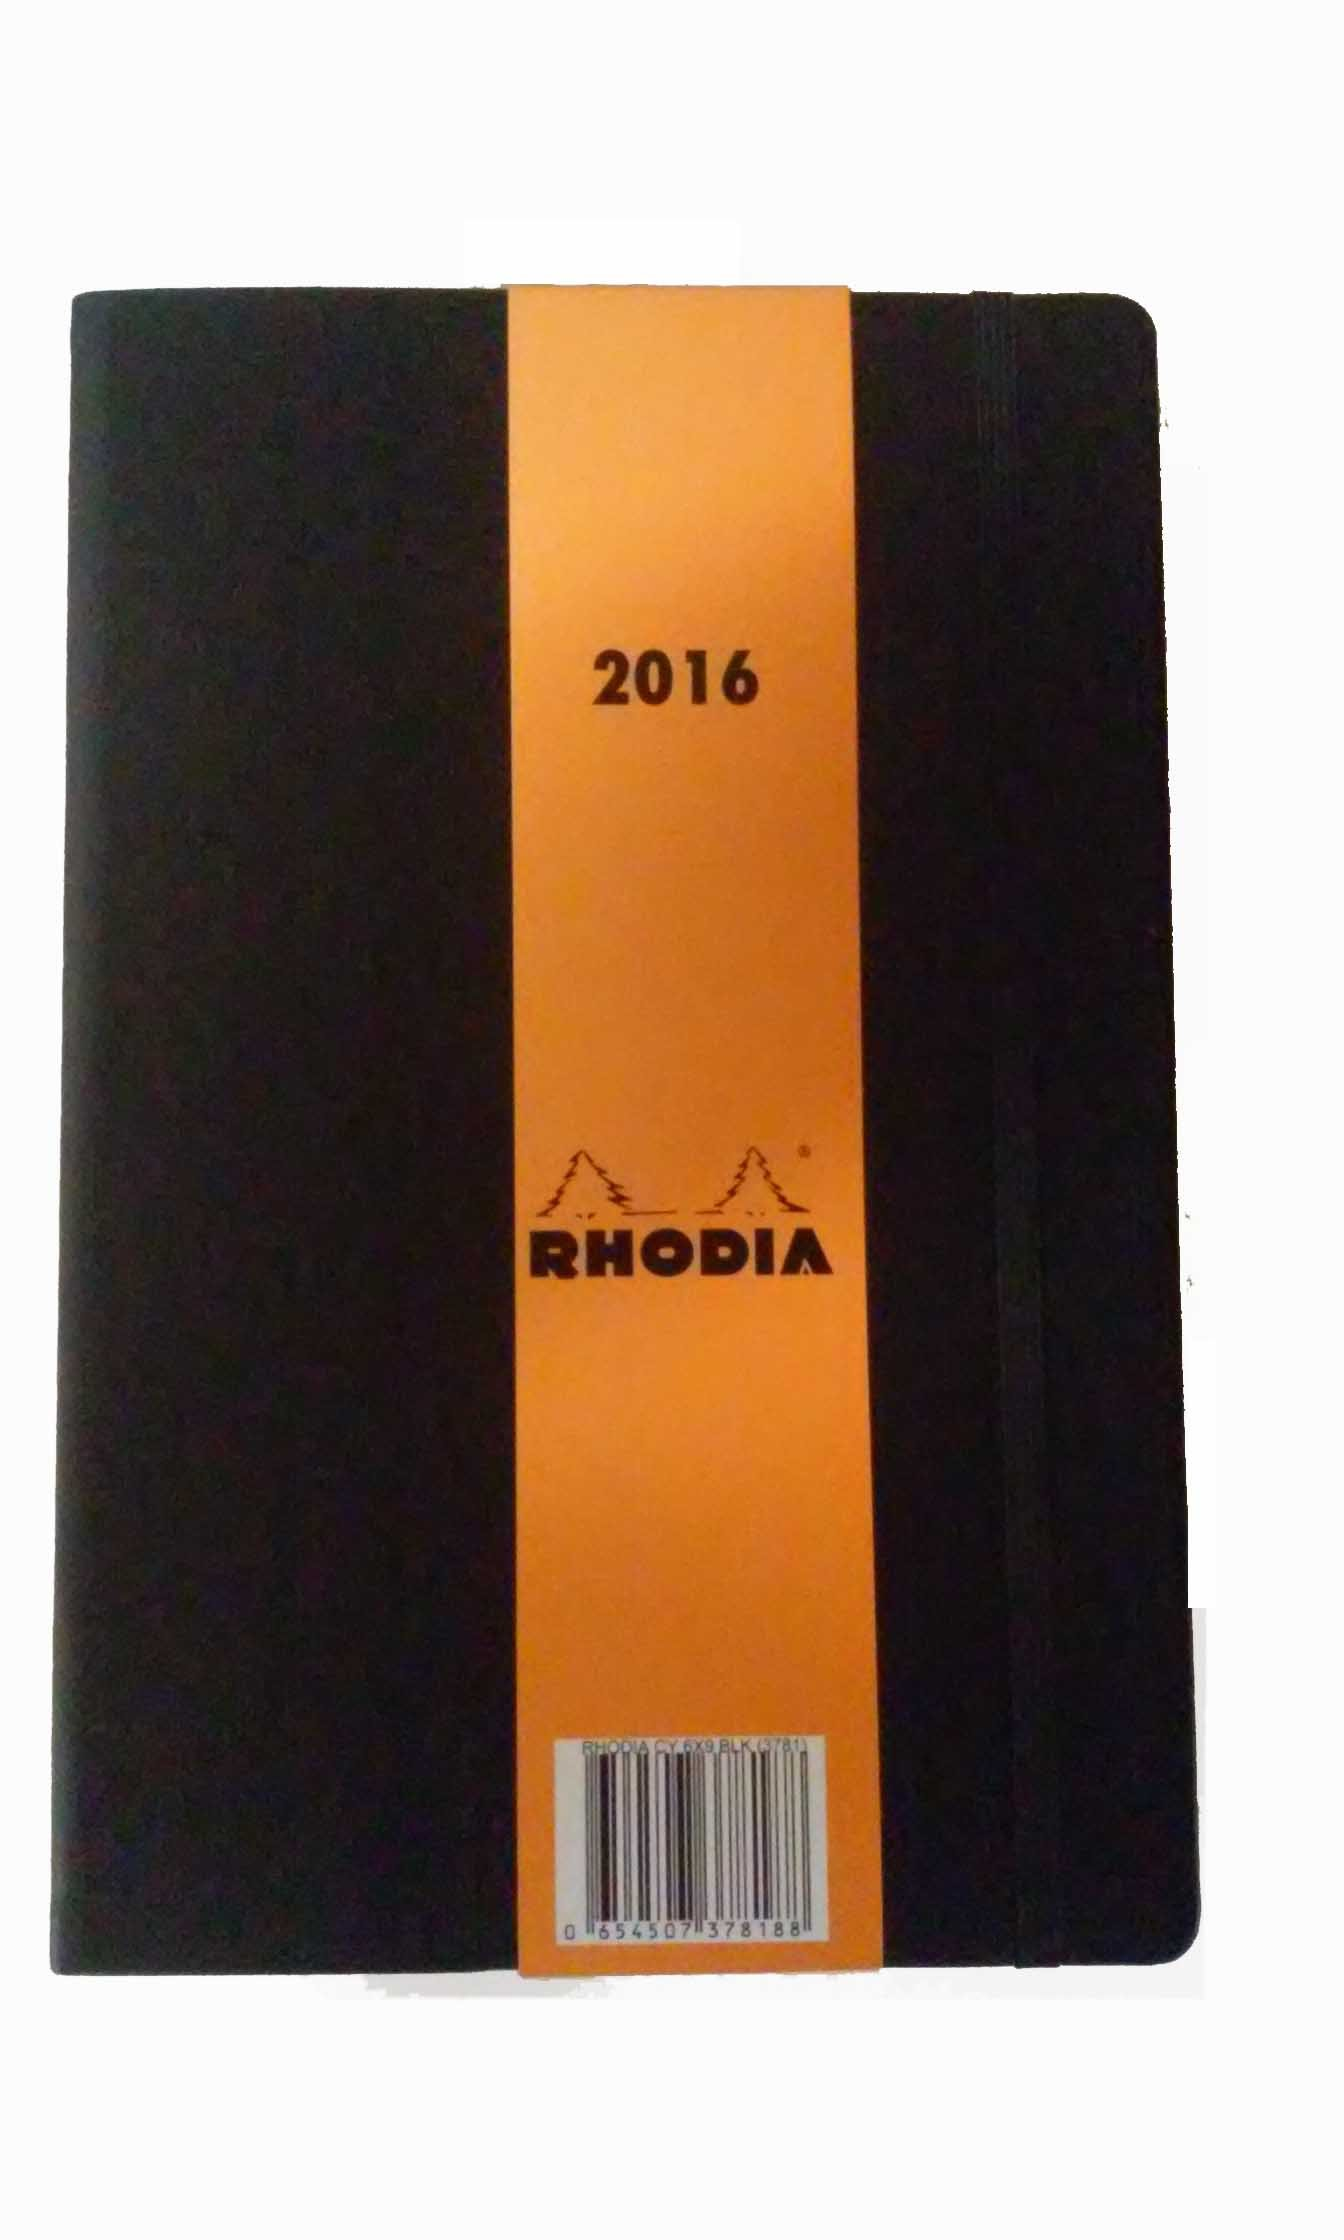 Rhodia For 2016 Diary with Note Paper 6'' x 9'' (Black)